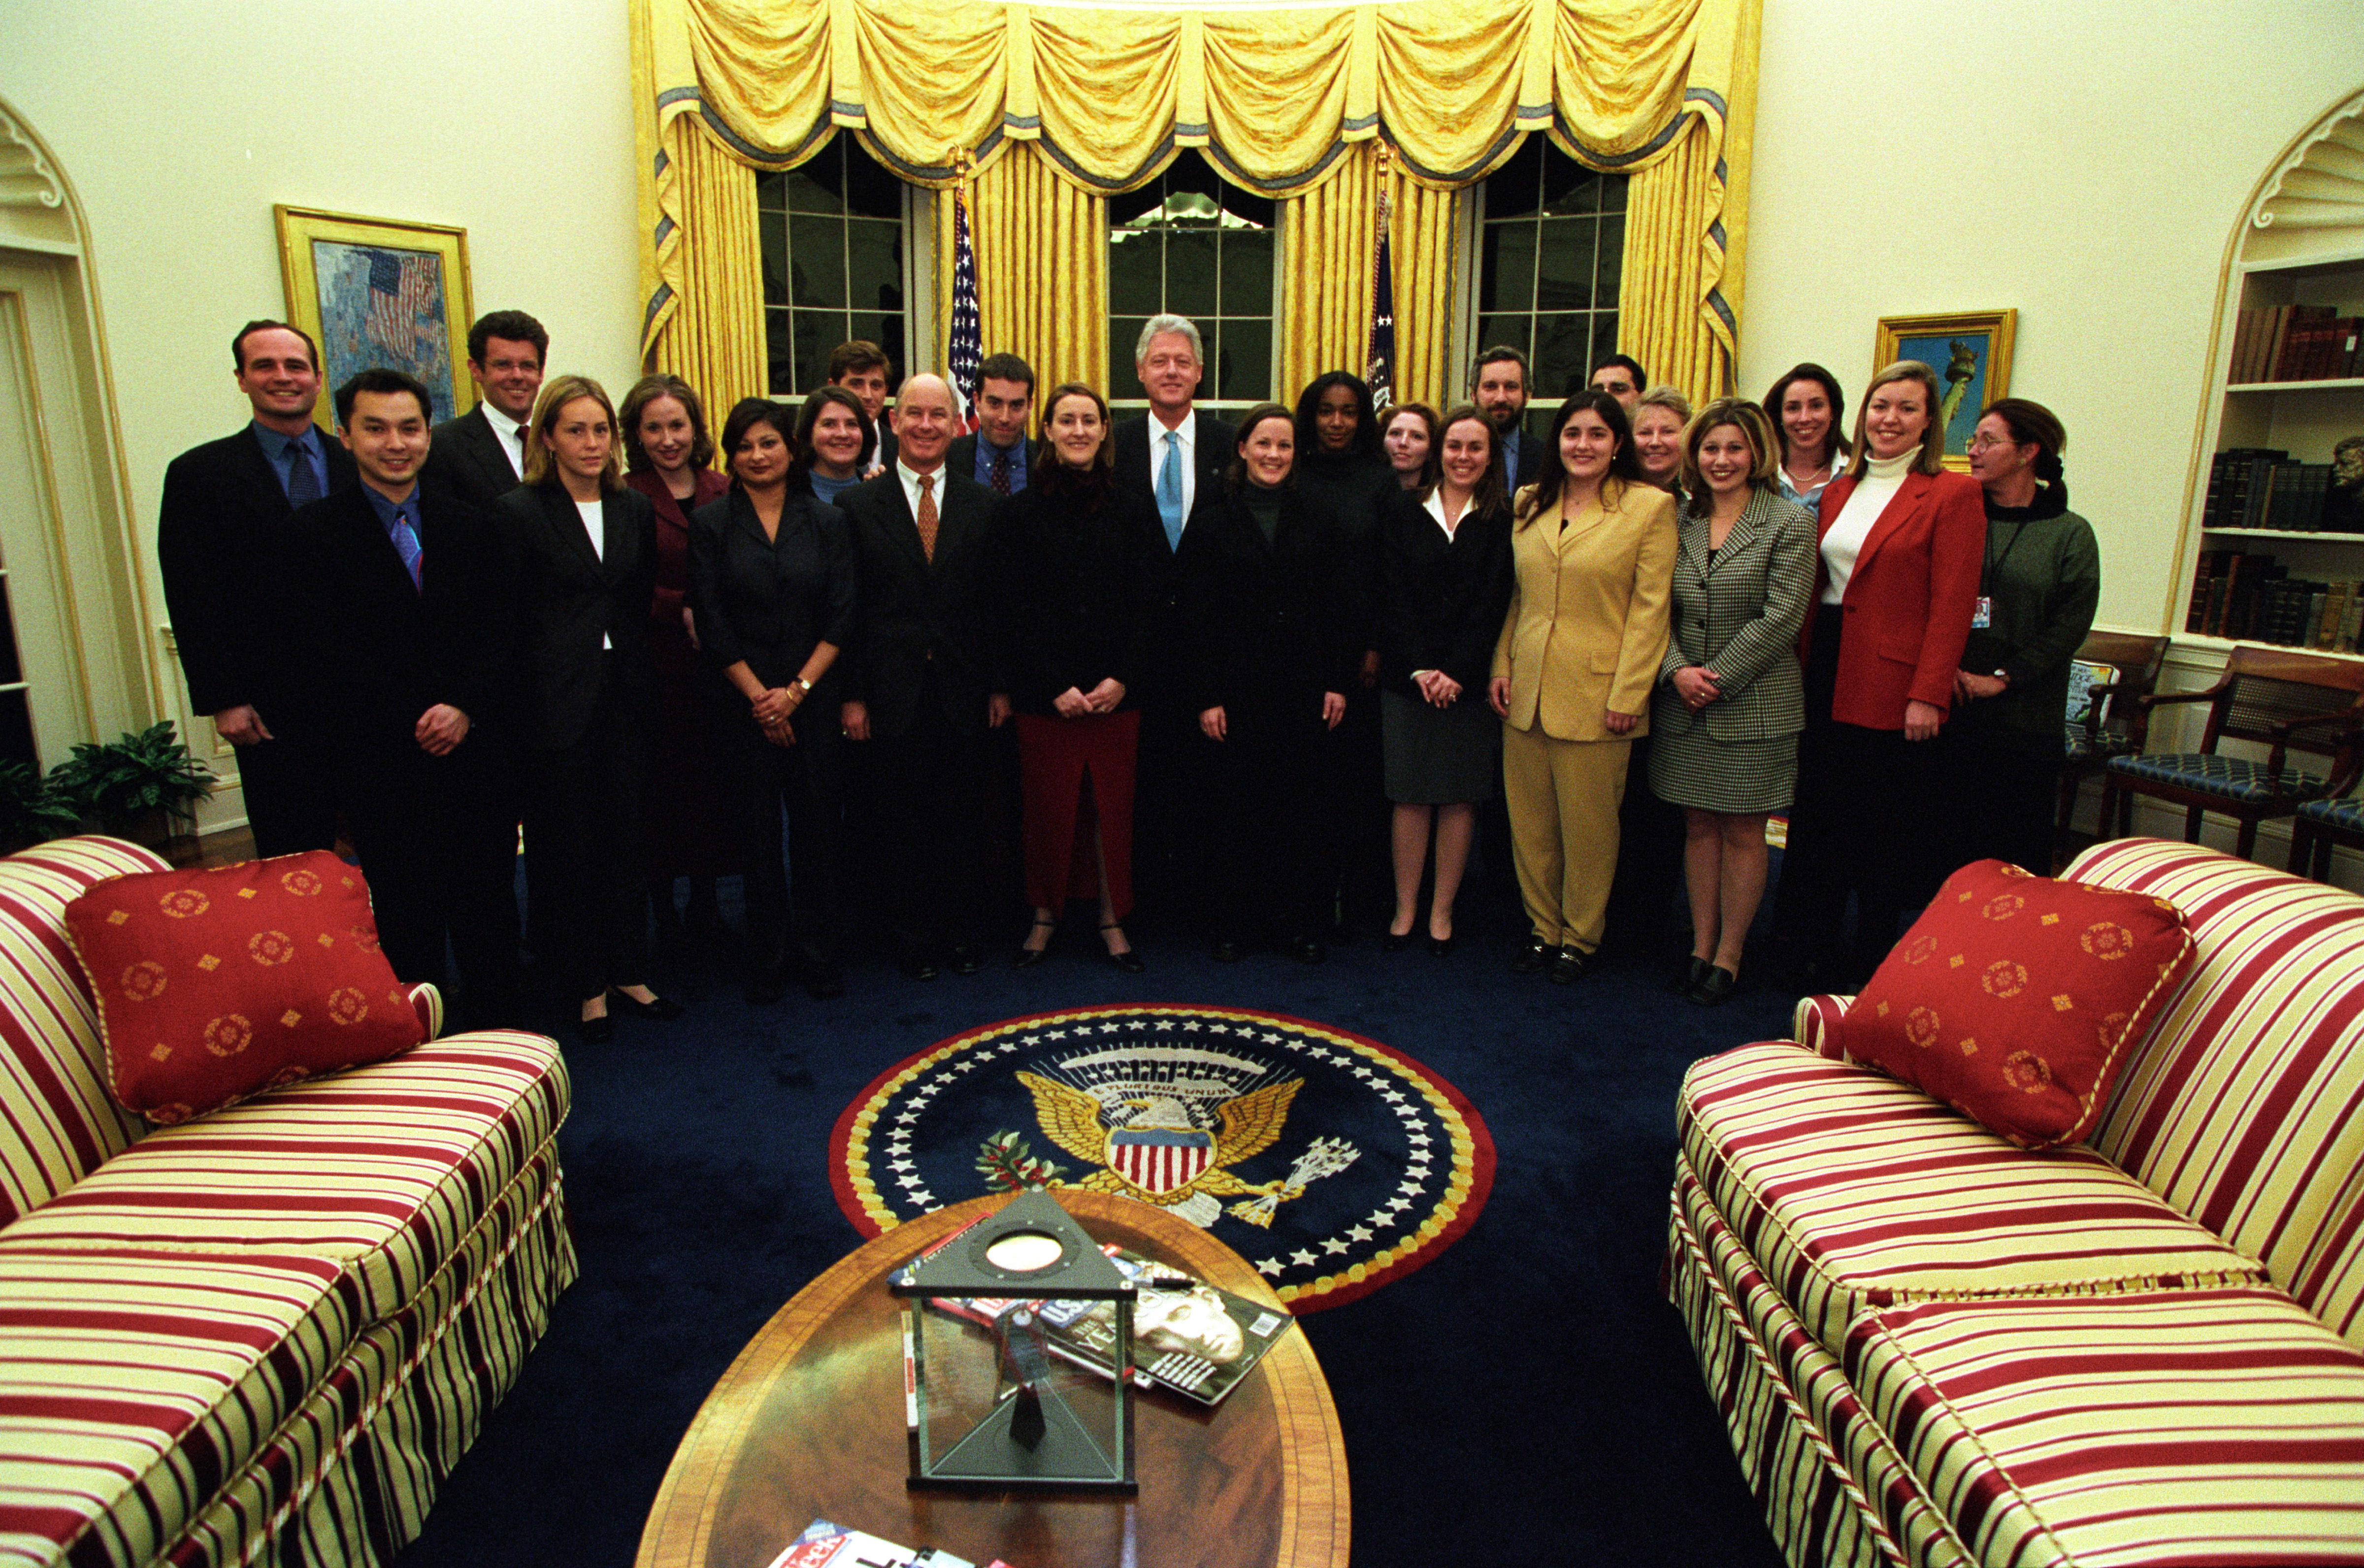 President Clinton joins the staff of the Press Secretary's Office for a group photo in the Oval Office